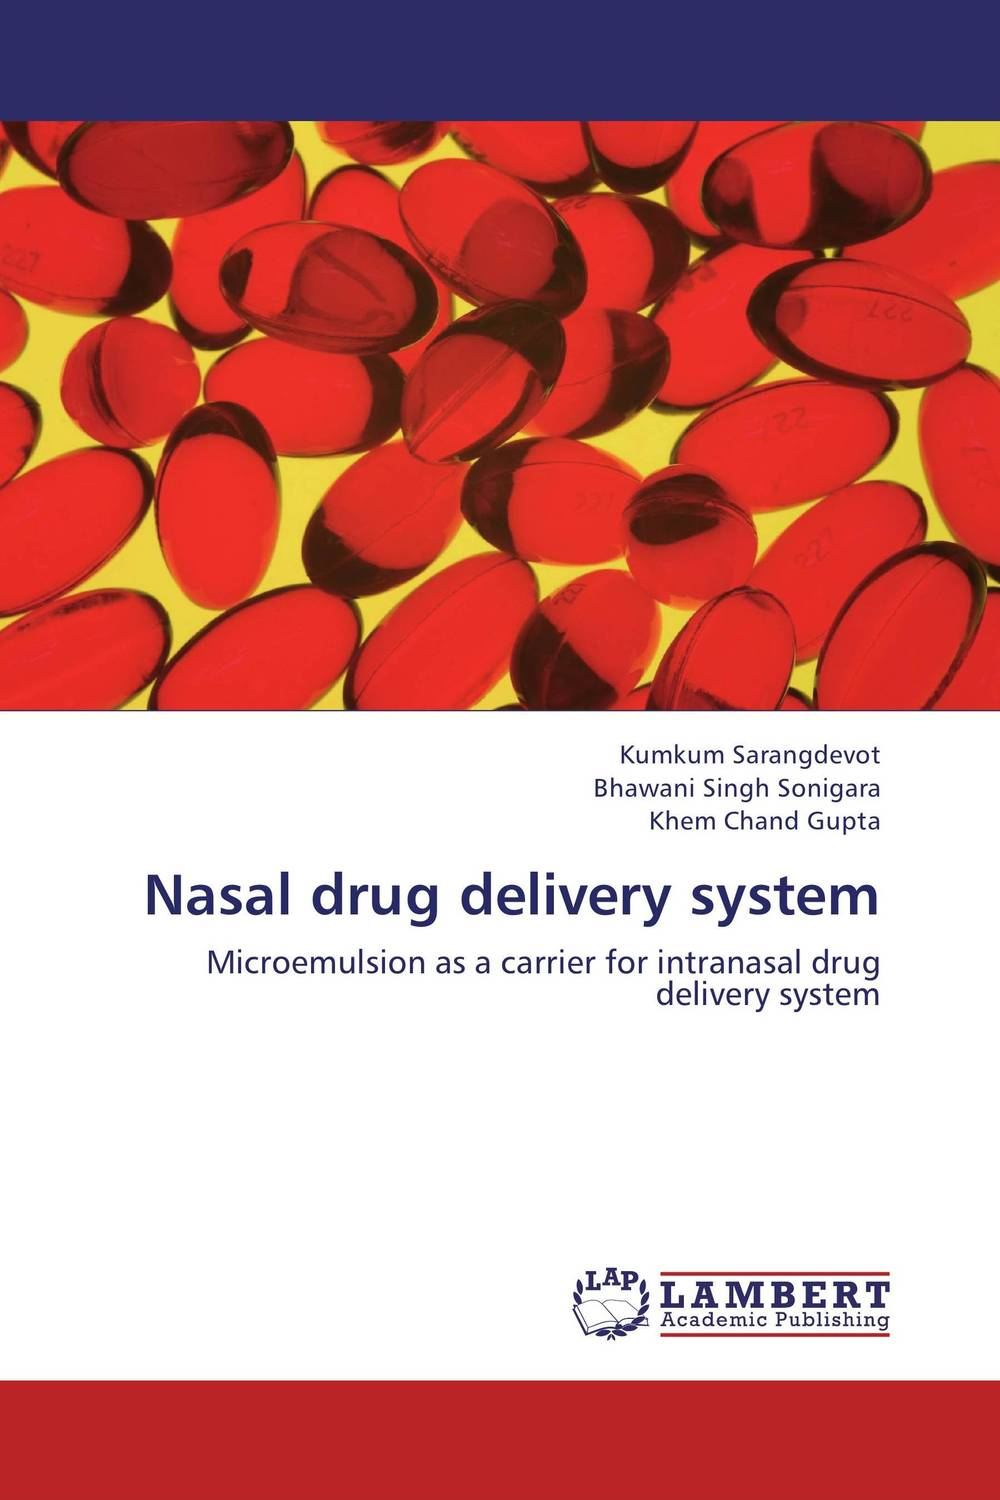 Nasal drug delivery system multilingualism and language choice for news delivery